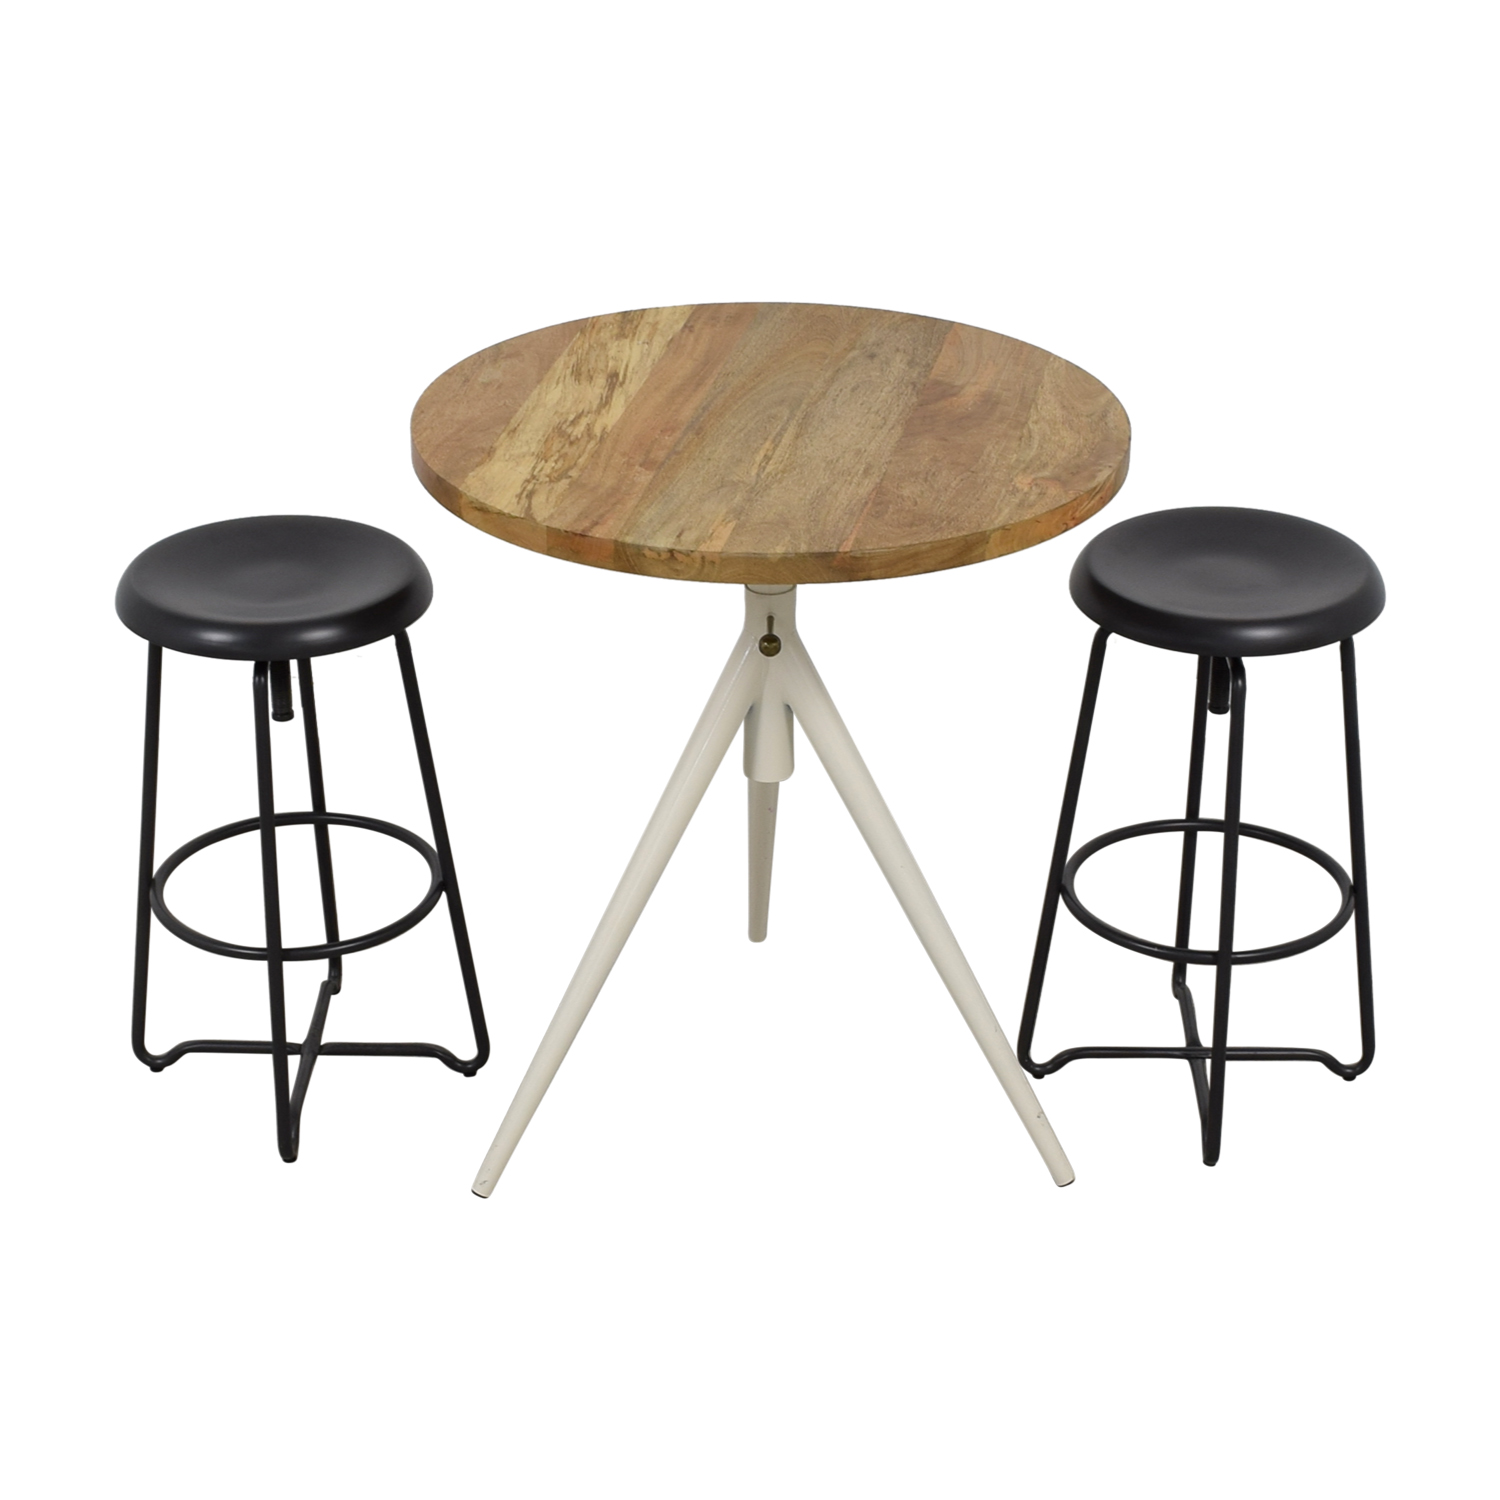 Rustic Wood Table and Bar Stools / Sofas